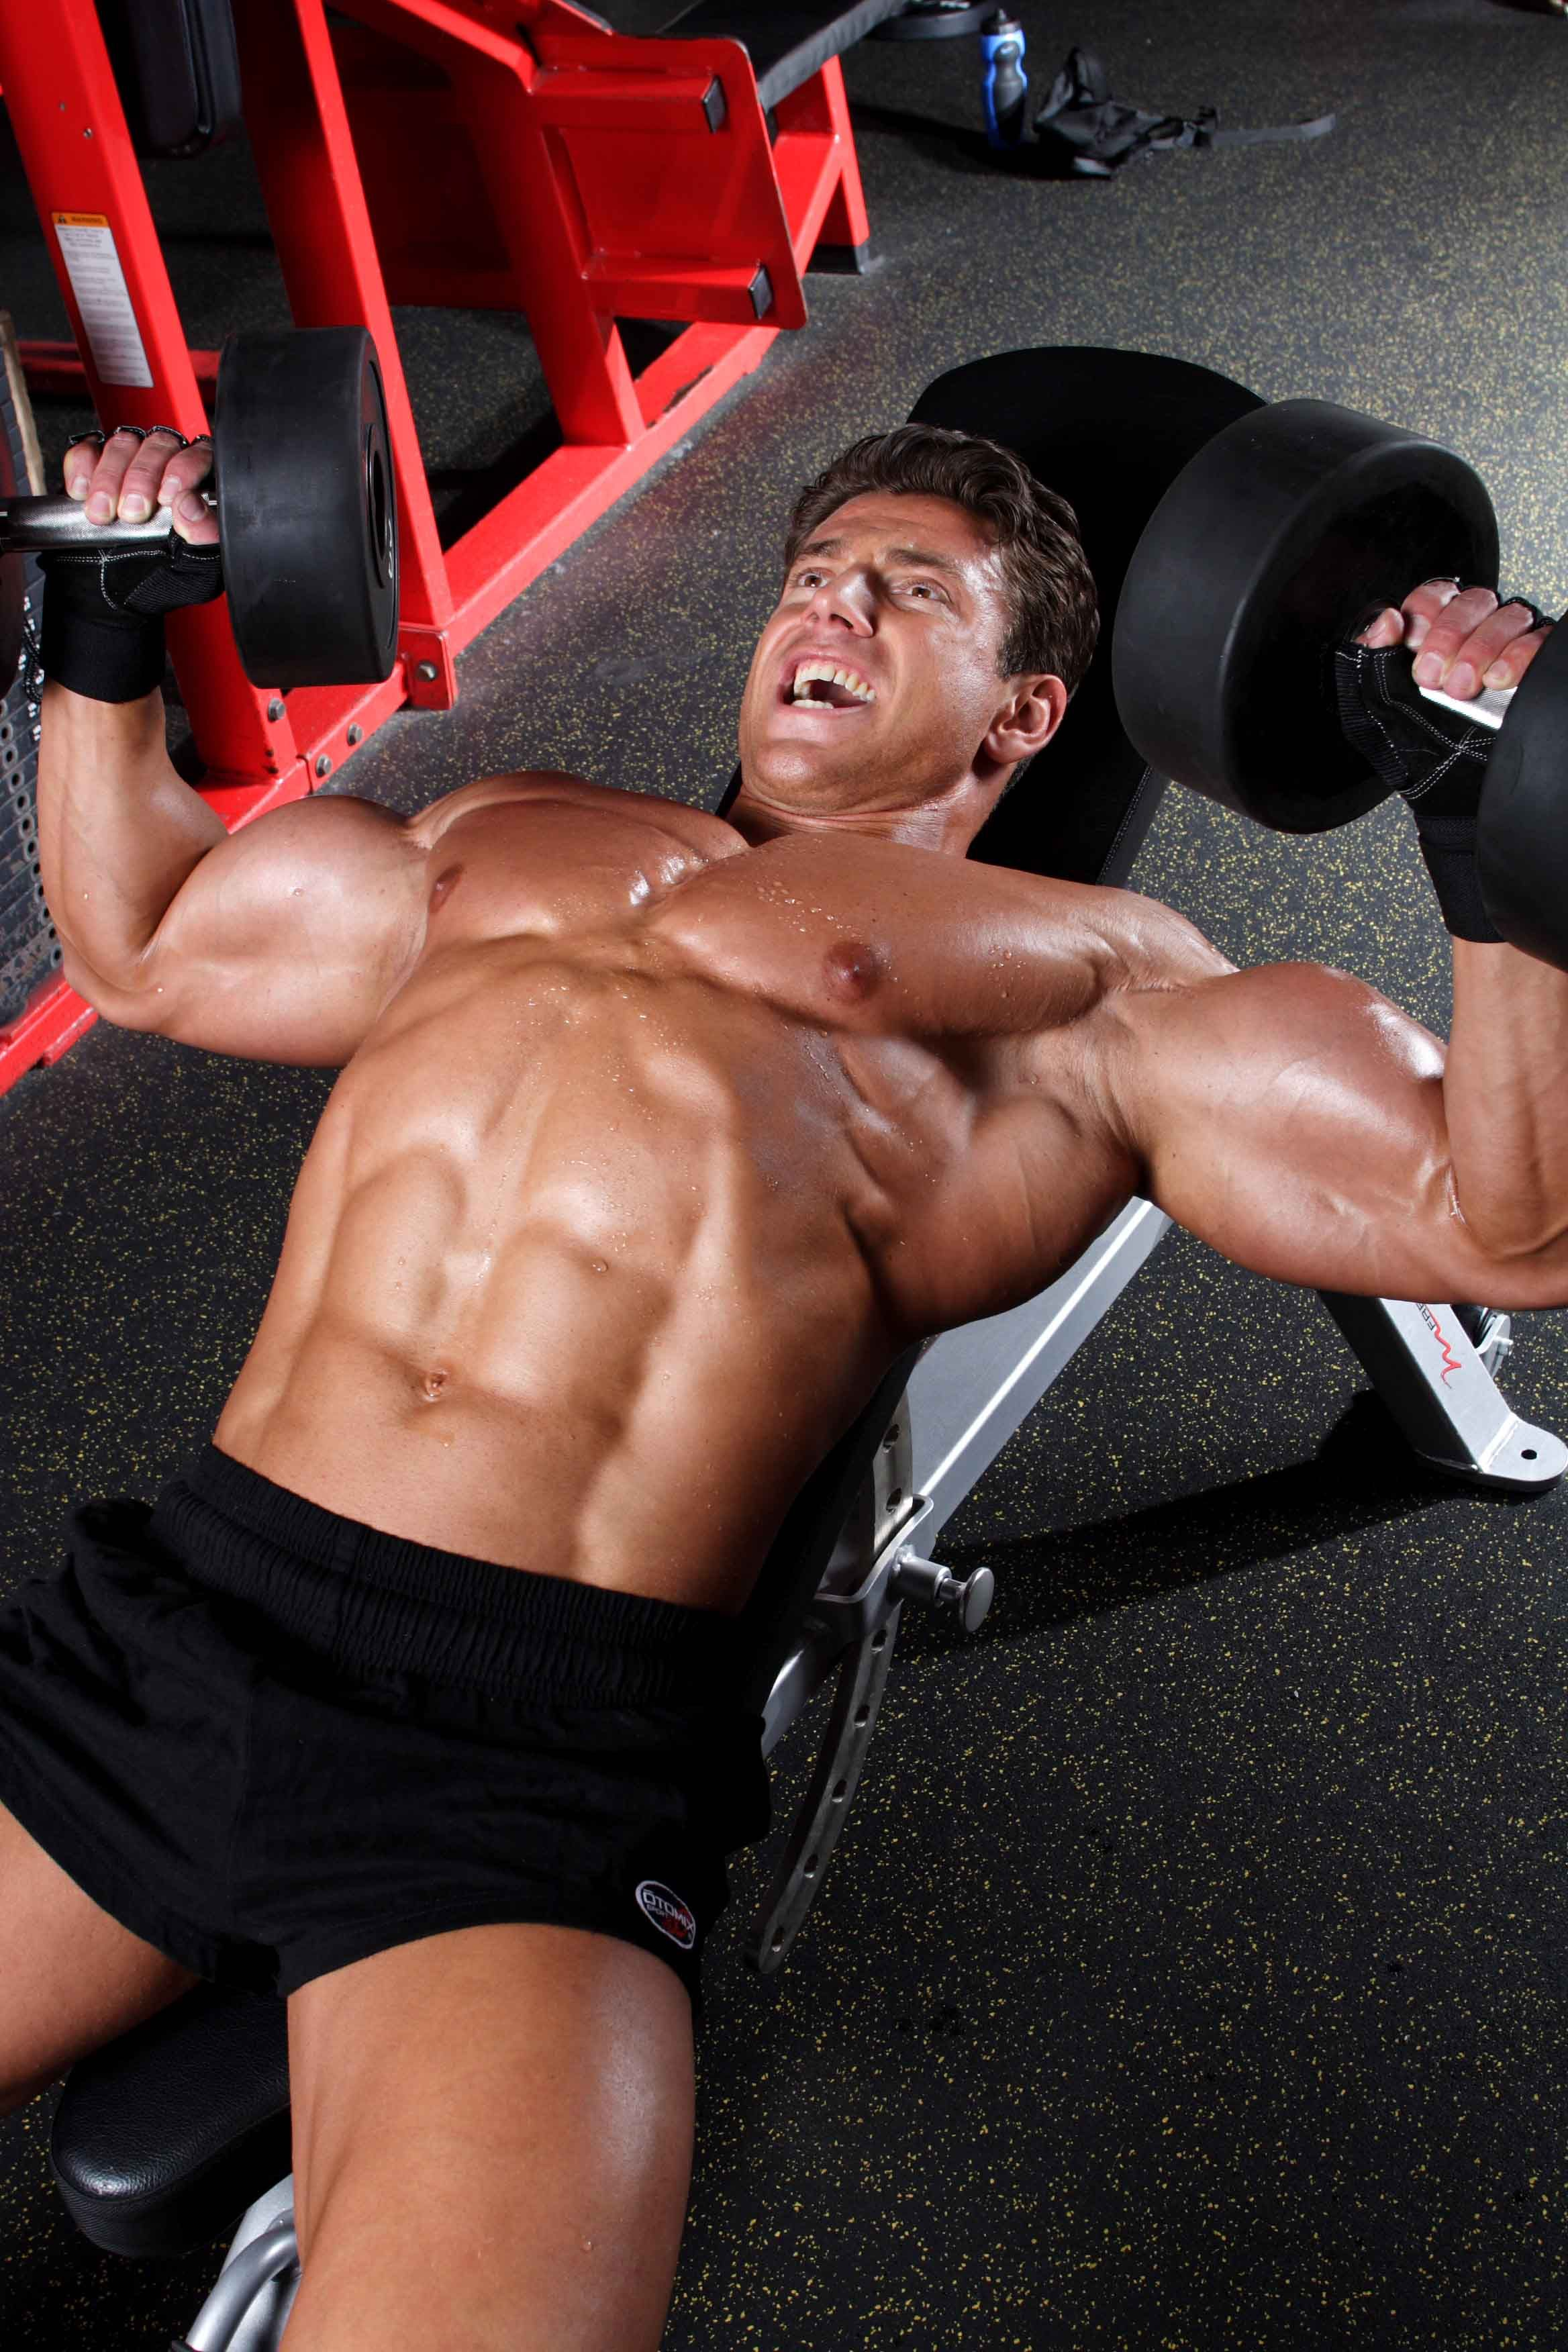 Planet Fitness Bench Press : planet, fitness, bench, press, Uppgen, Fitness, Inspiration, Planet, Workout,, Daily, Workout